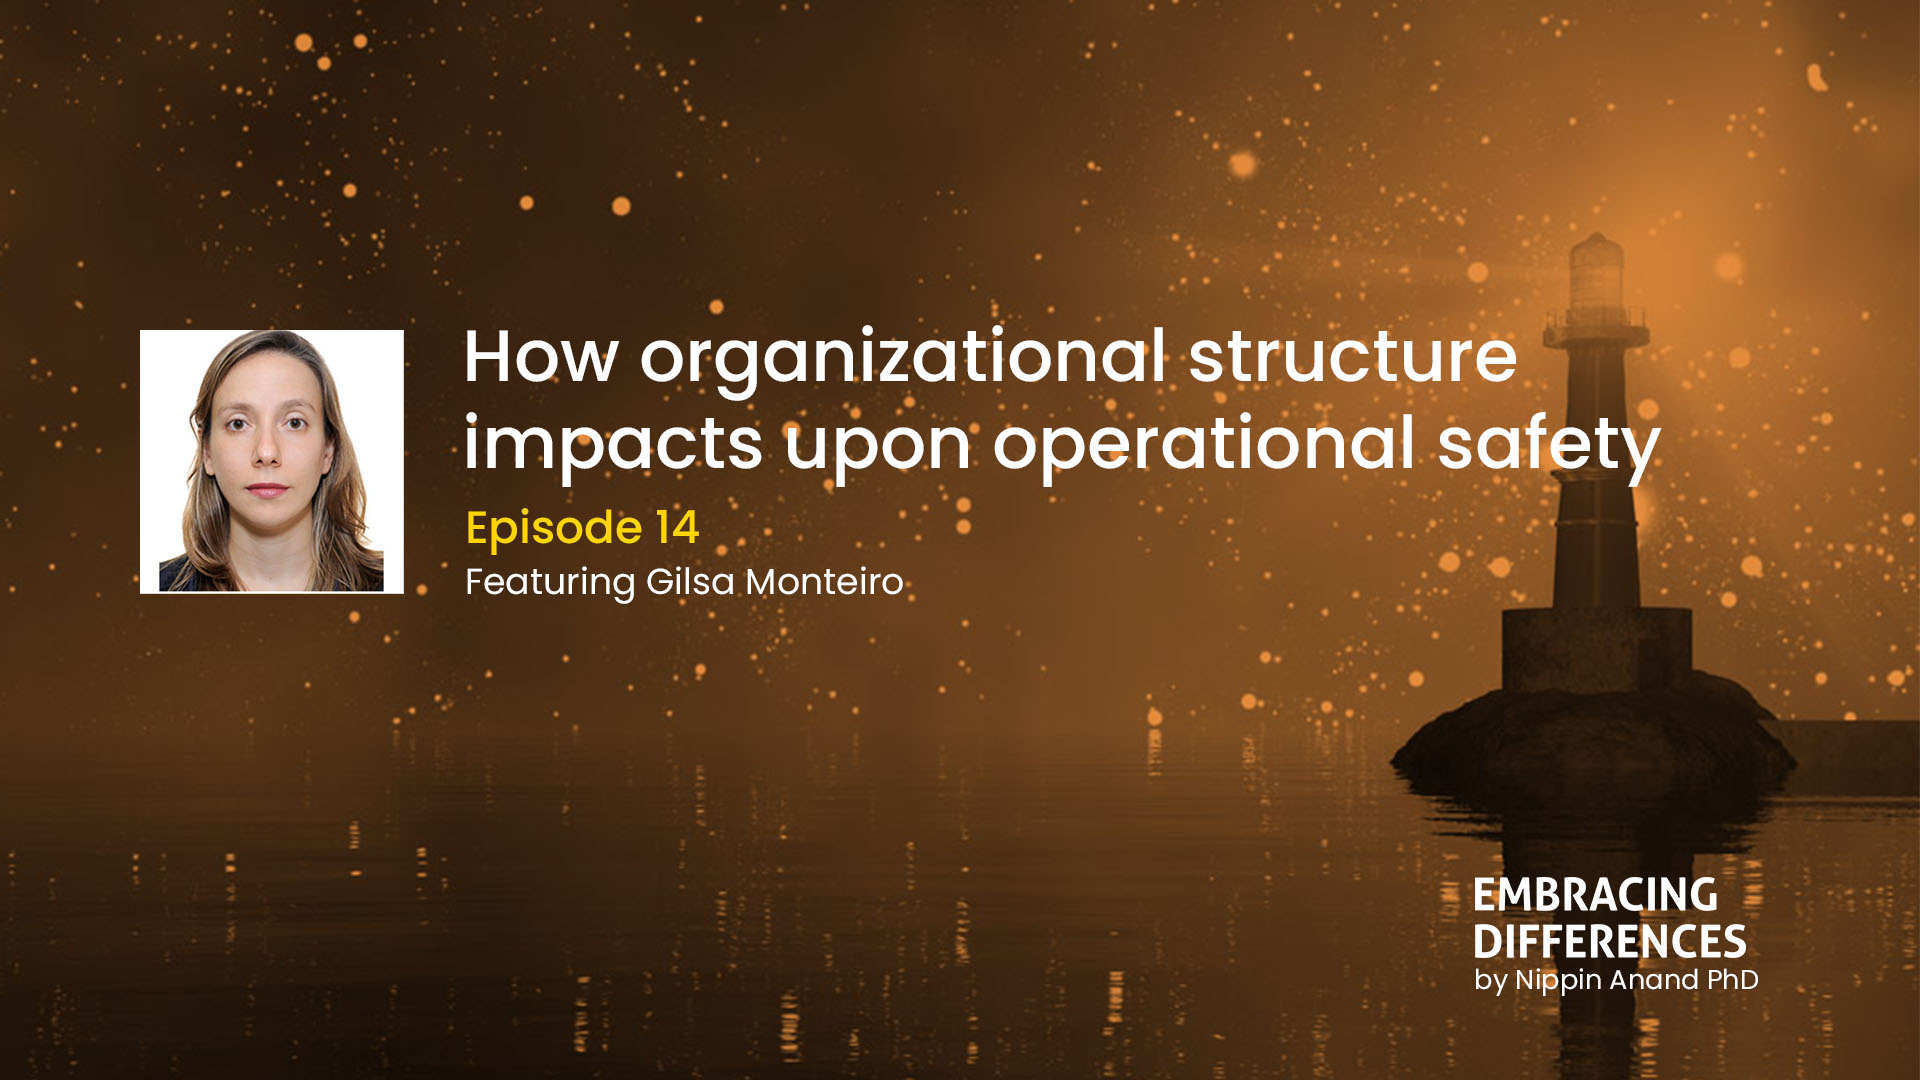 How organizational structure impacts upon operational safety